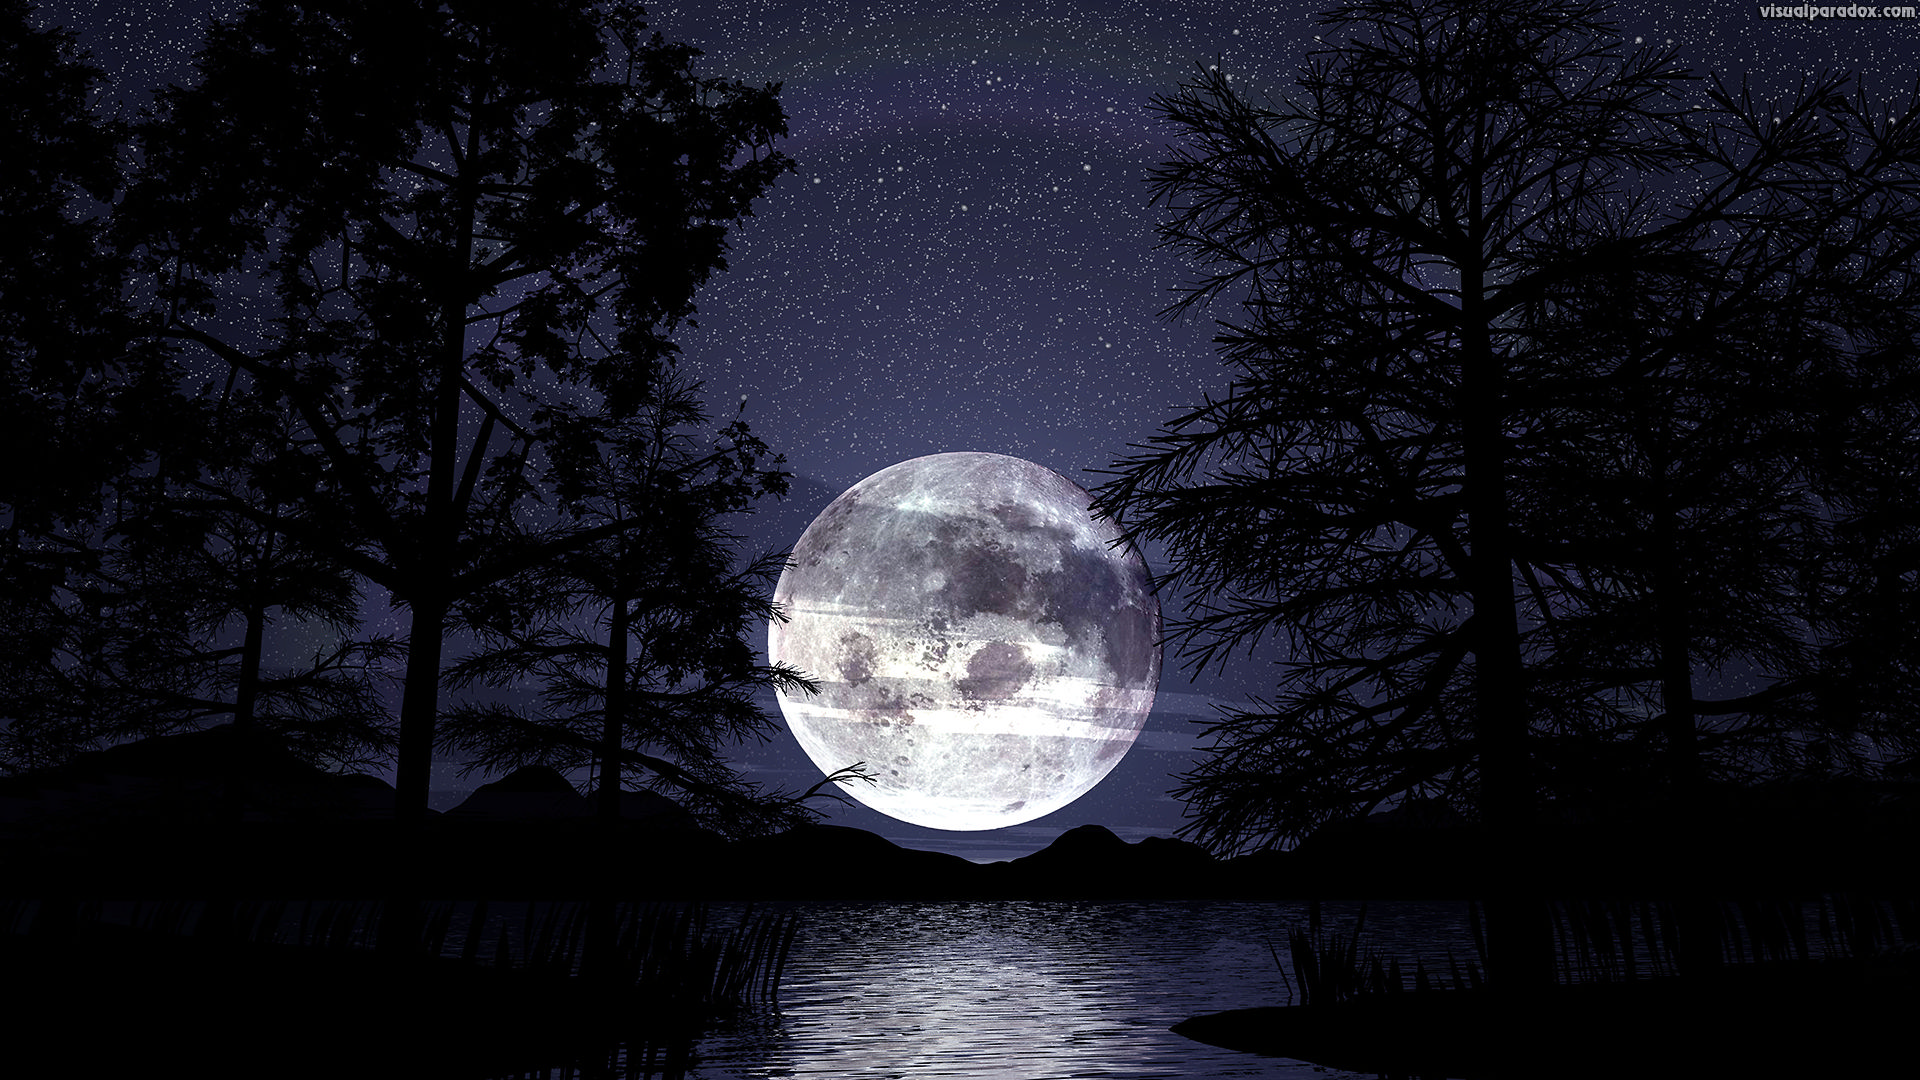 lunar, trees, lake, water, reeds, silhouette, stars, romantic, peaceful, tranquil, reflections, full, 3d, wallpaper